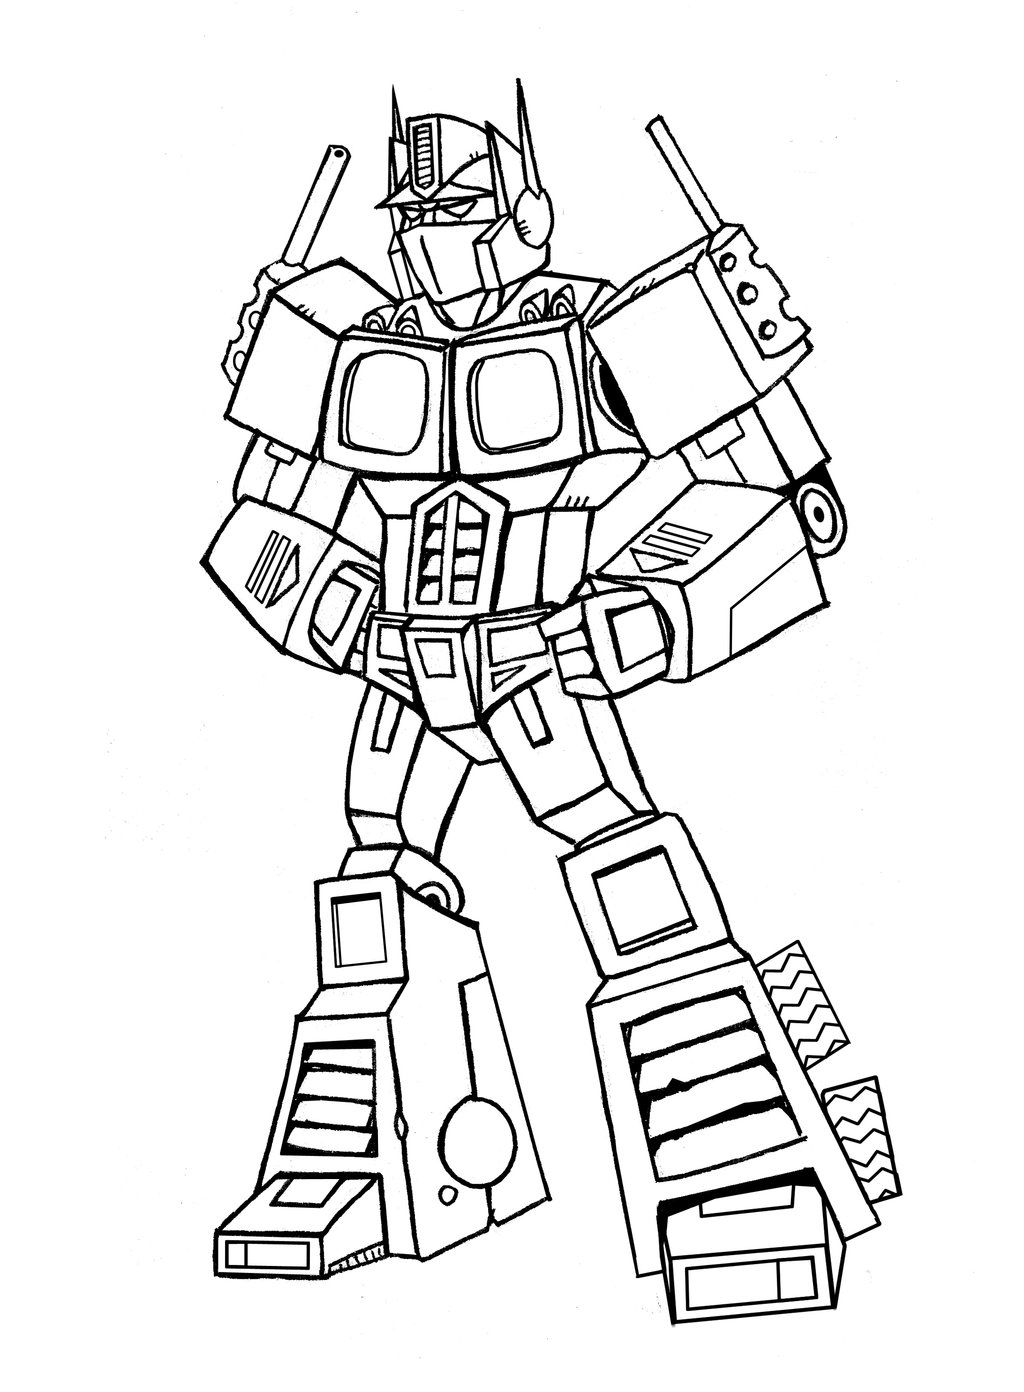 Transformers Optimus Prime Coloring Pages - Coloring Page Photos